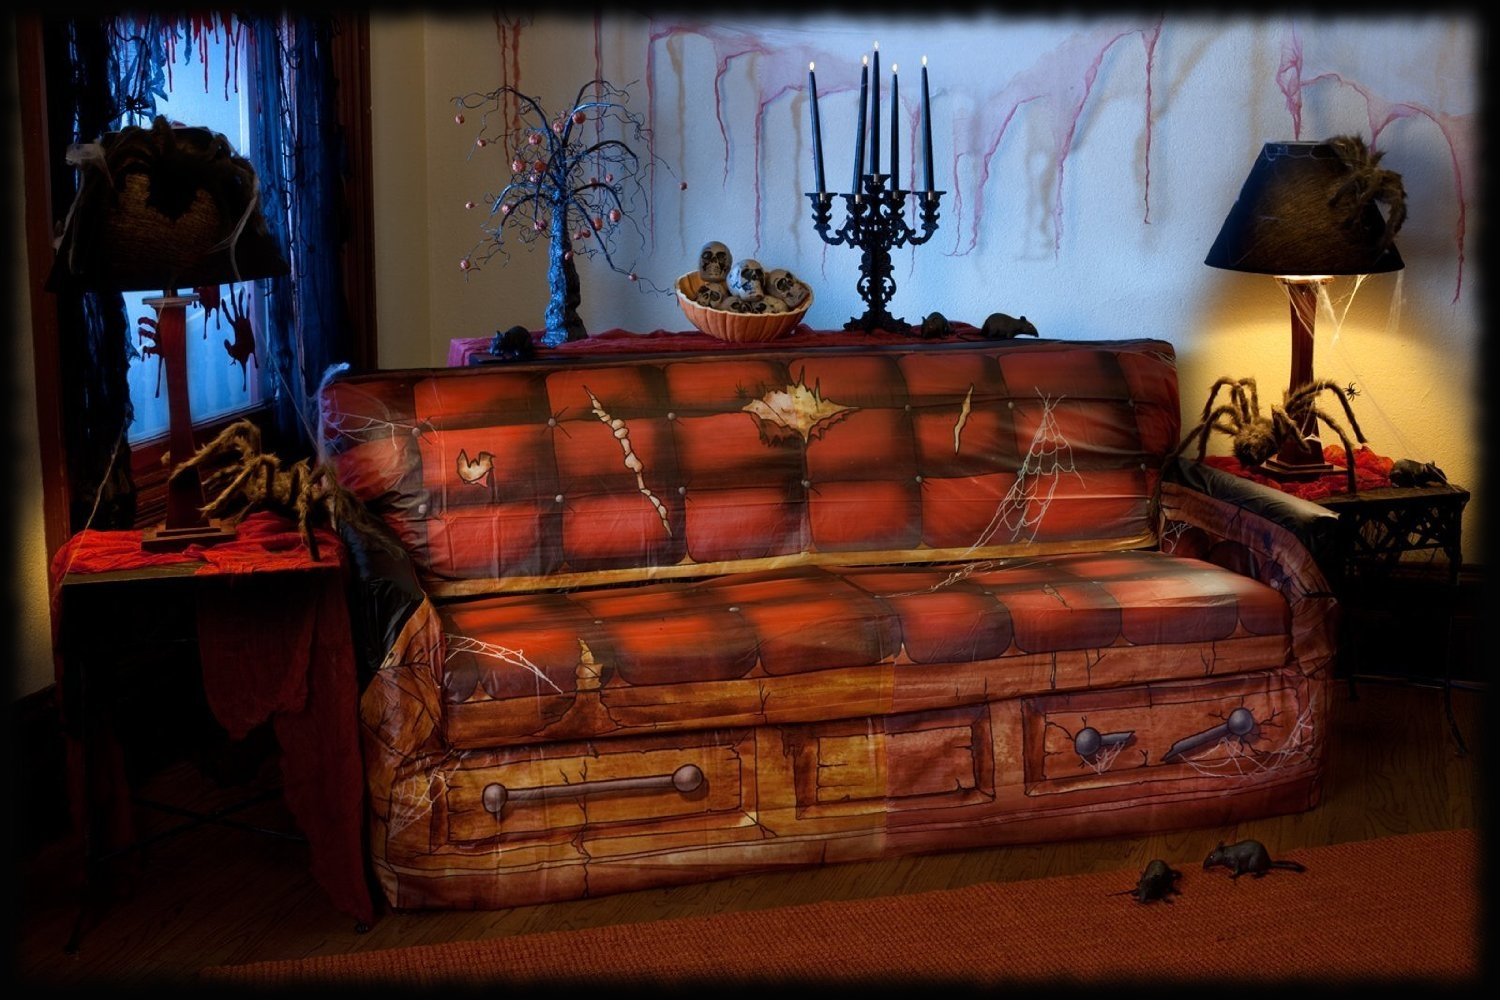 Sofa Couch Cover Haunted House Decorations for sale